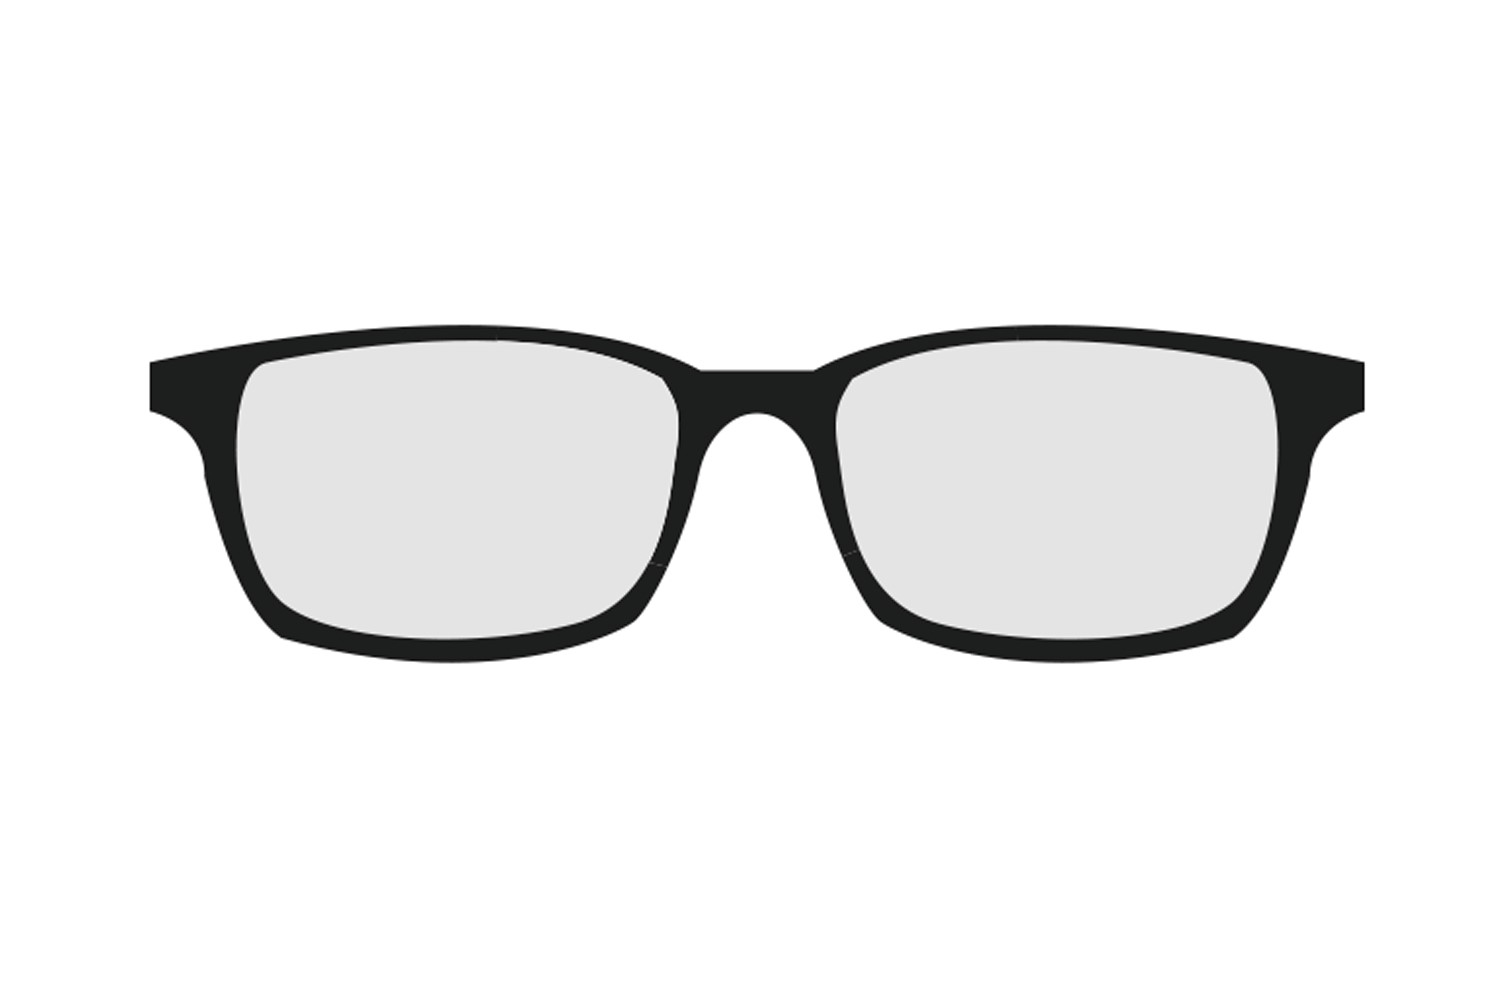 Glasses, lenses and eye surgery – Tobii Eye Tracking Support